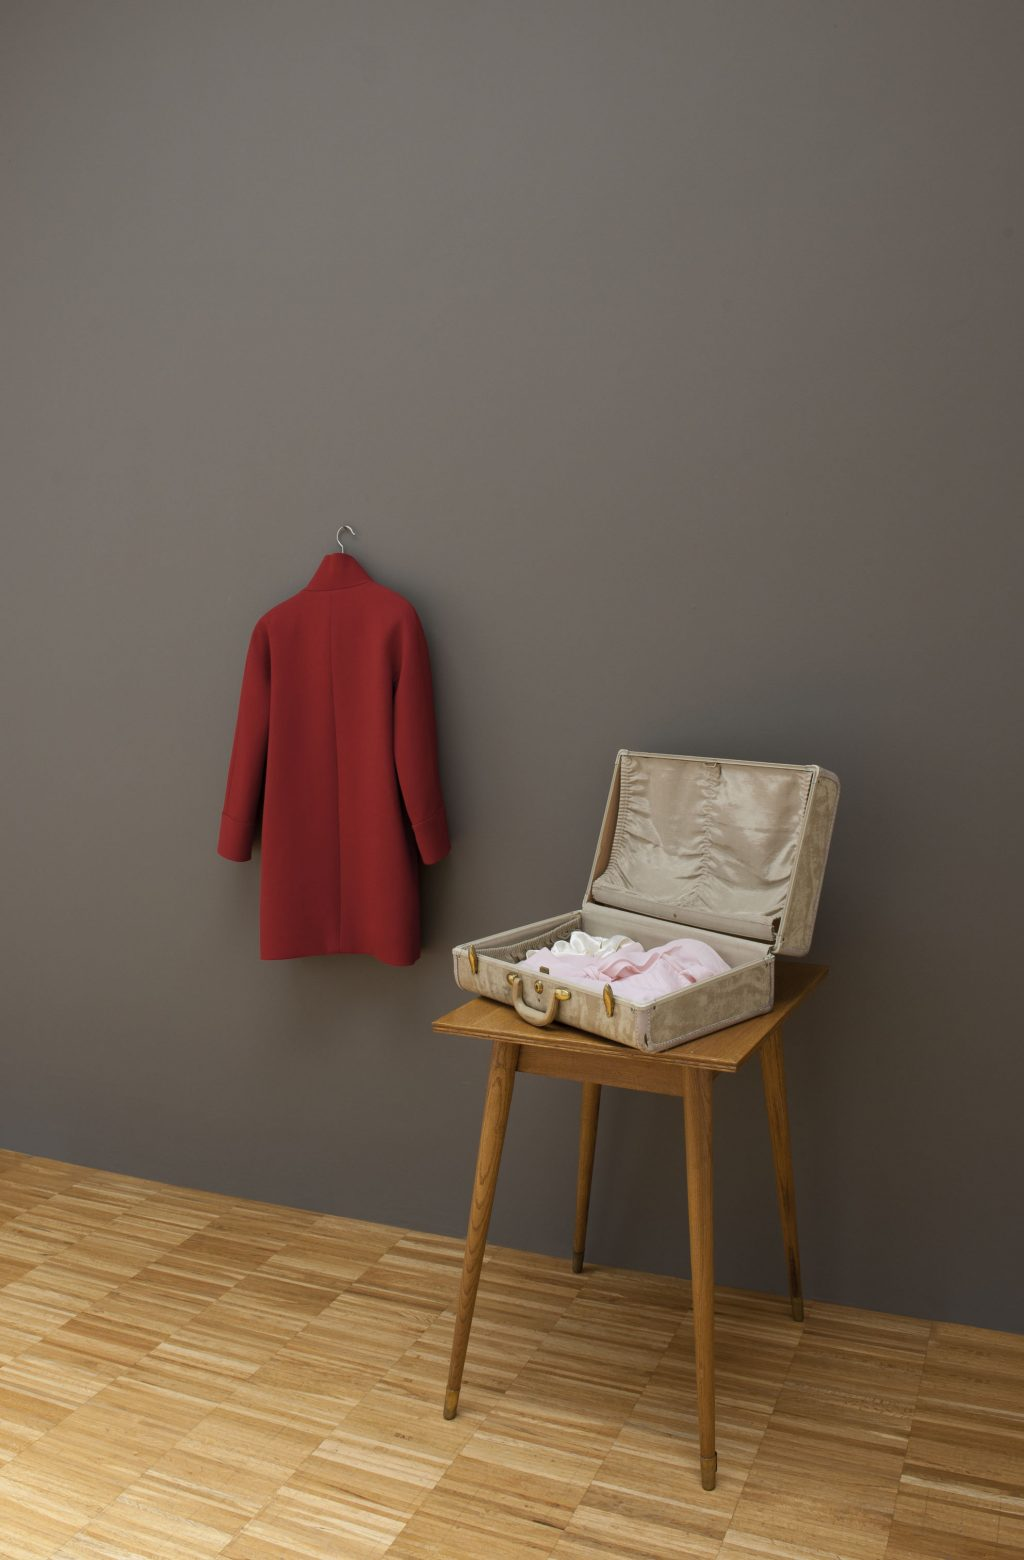 Dominique Gonzalez-Foerster , installation view at Jan Mot, 2012